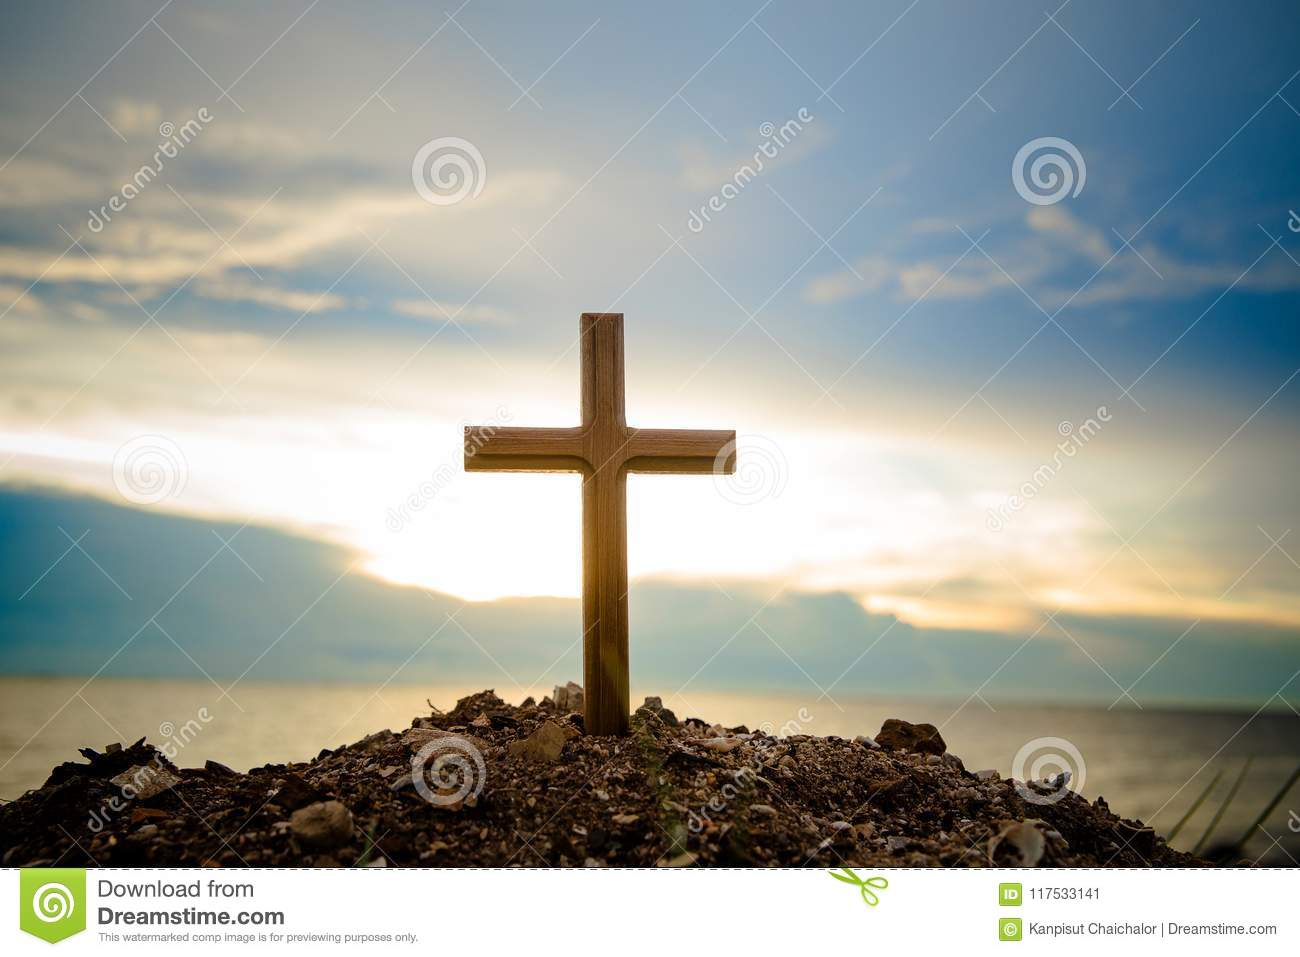 the cross standing on meadow sunset and flare background cross on a hill as the morning sun comes up for the day stock image image of friday believe 117533141 https www dreamstime com cross standing meadow sunset flare background cross hill as morning sun comes up day cross image117533141